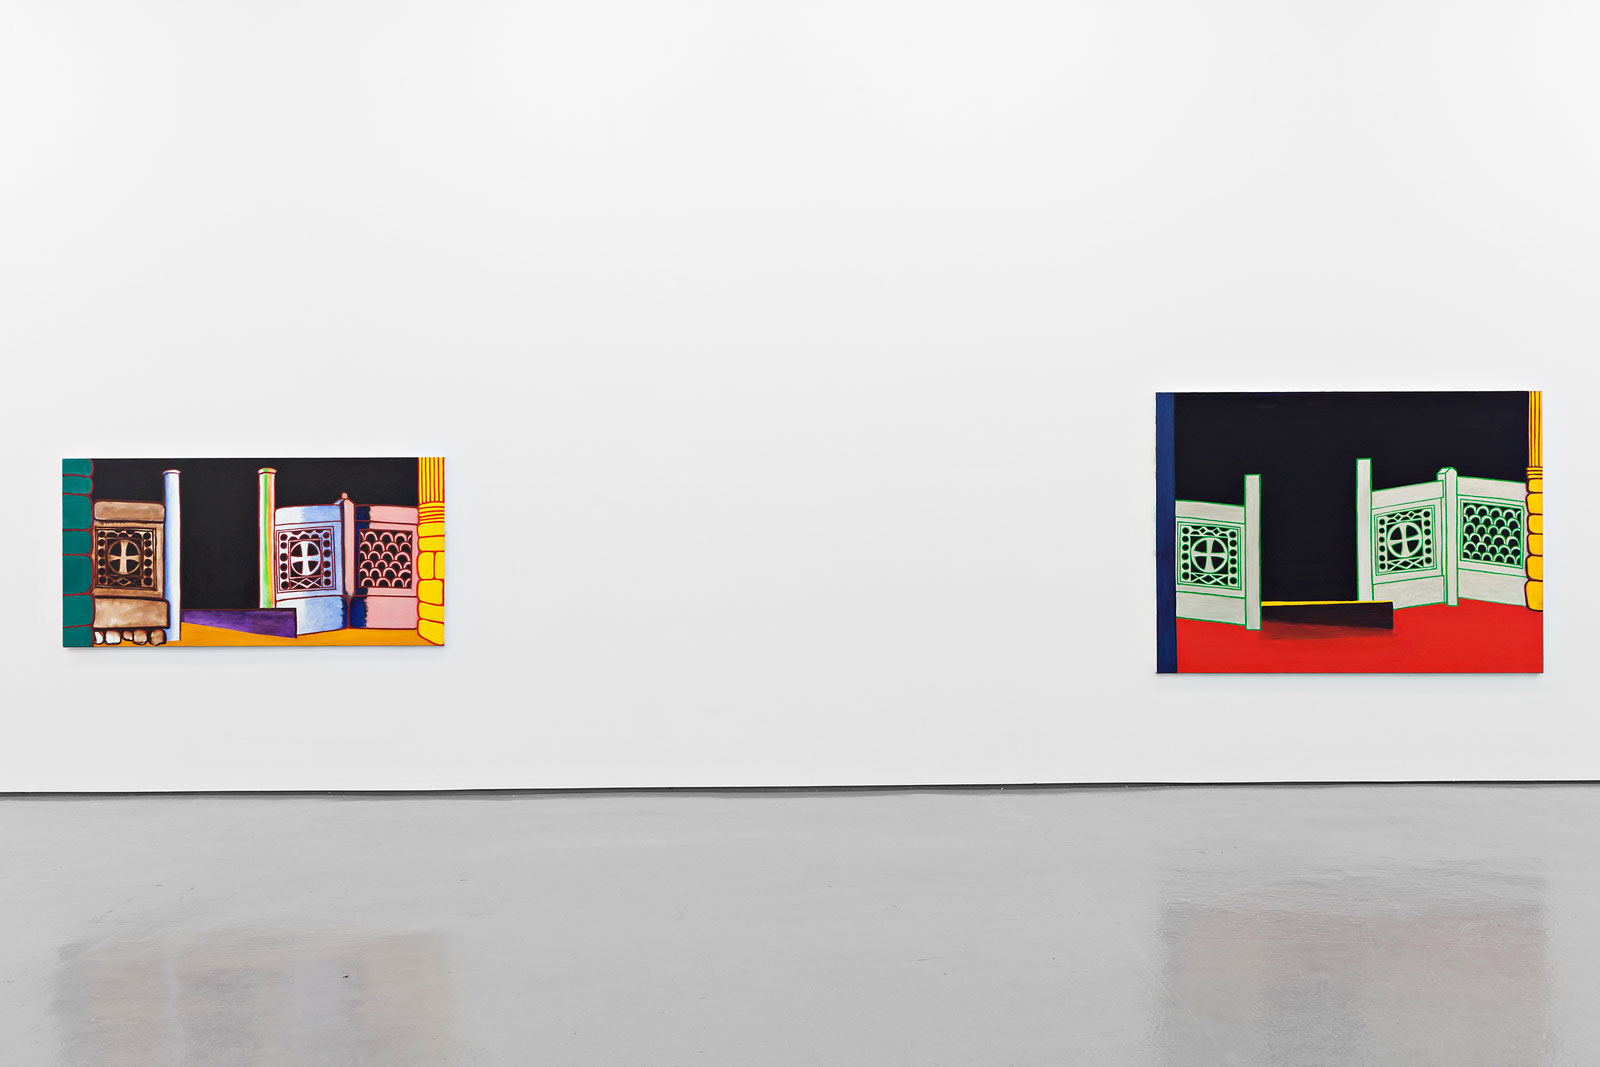 Installation view, Paul Osipow, New Paintings, Galleri Riis, Oslo, 2013